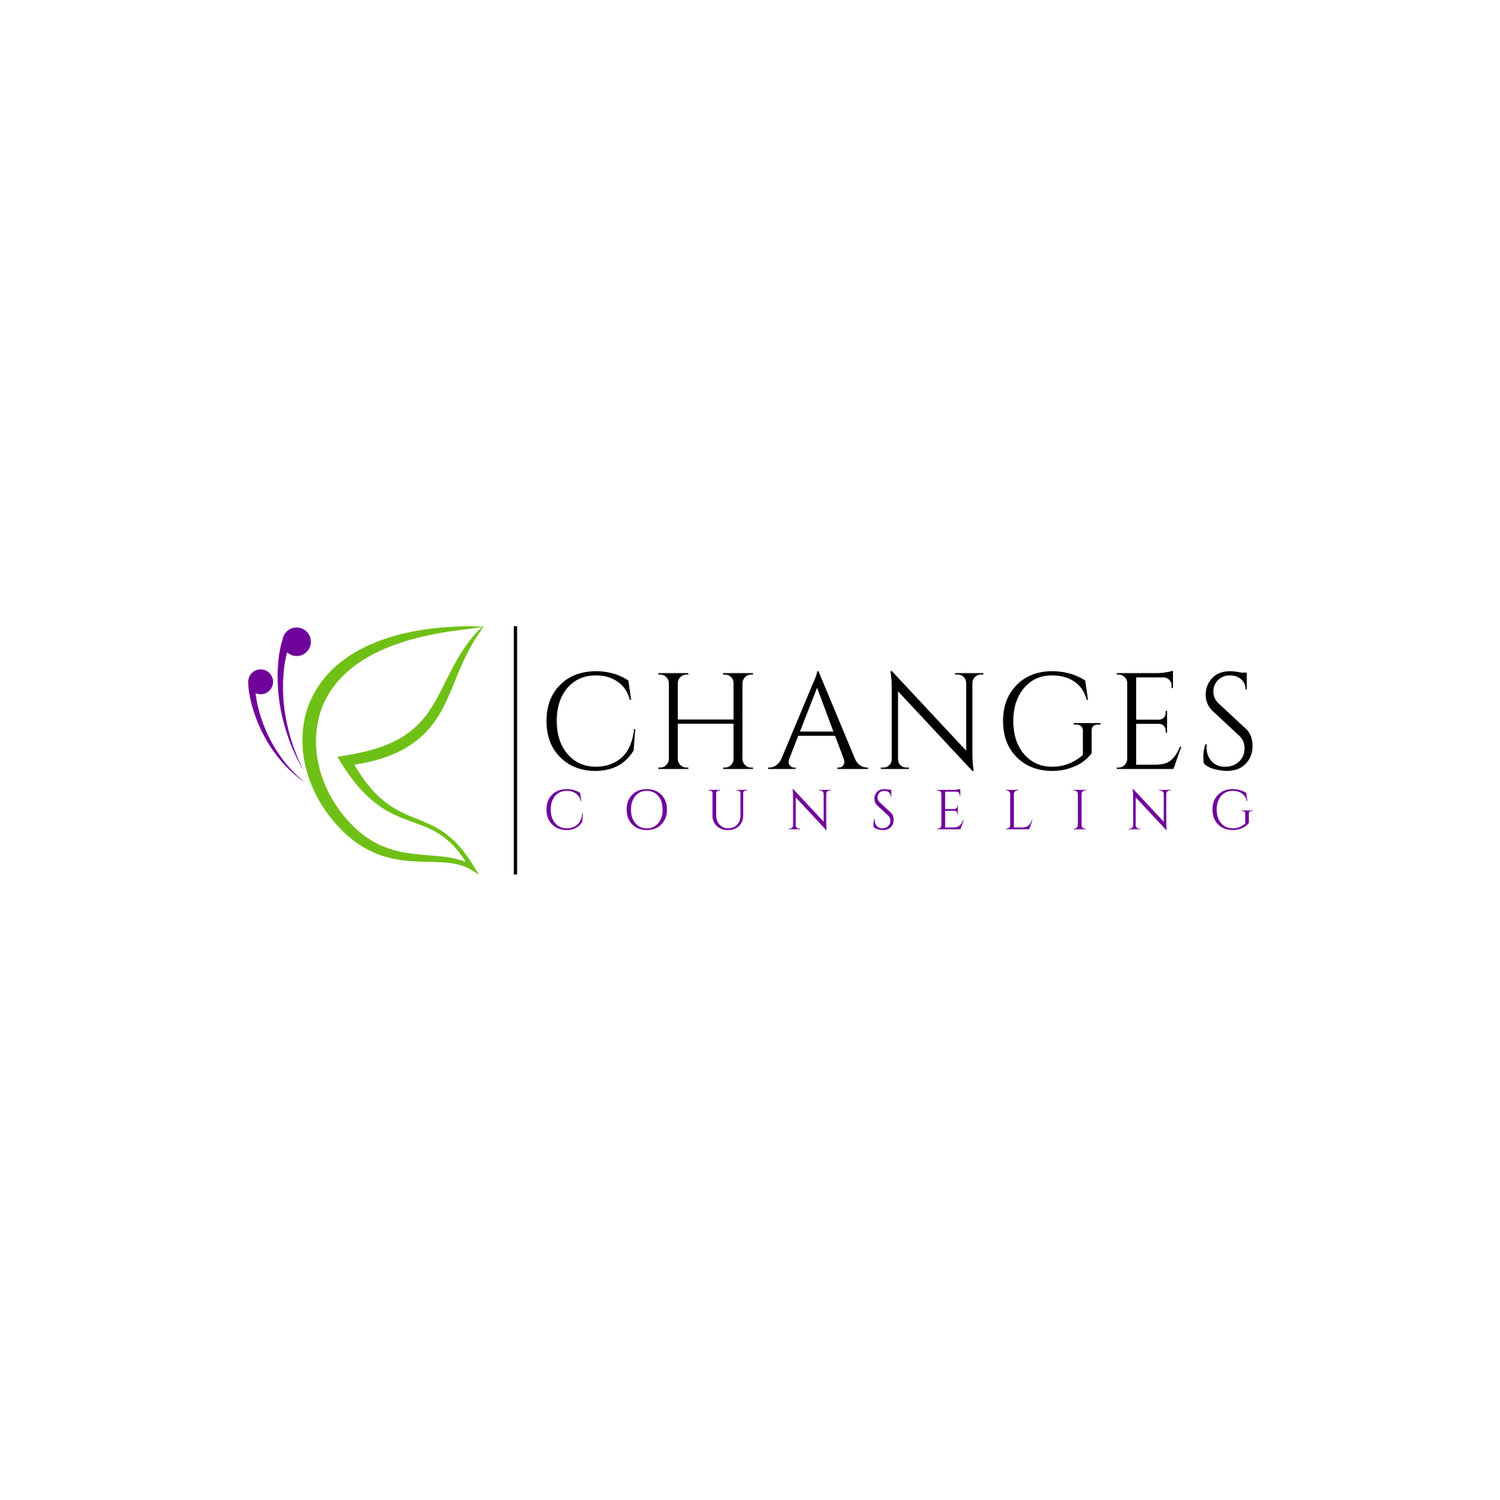 Changes Counseling LLC